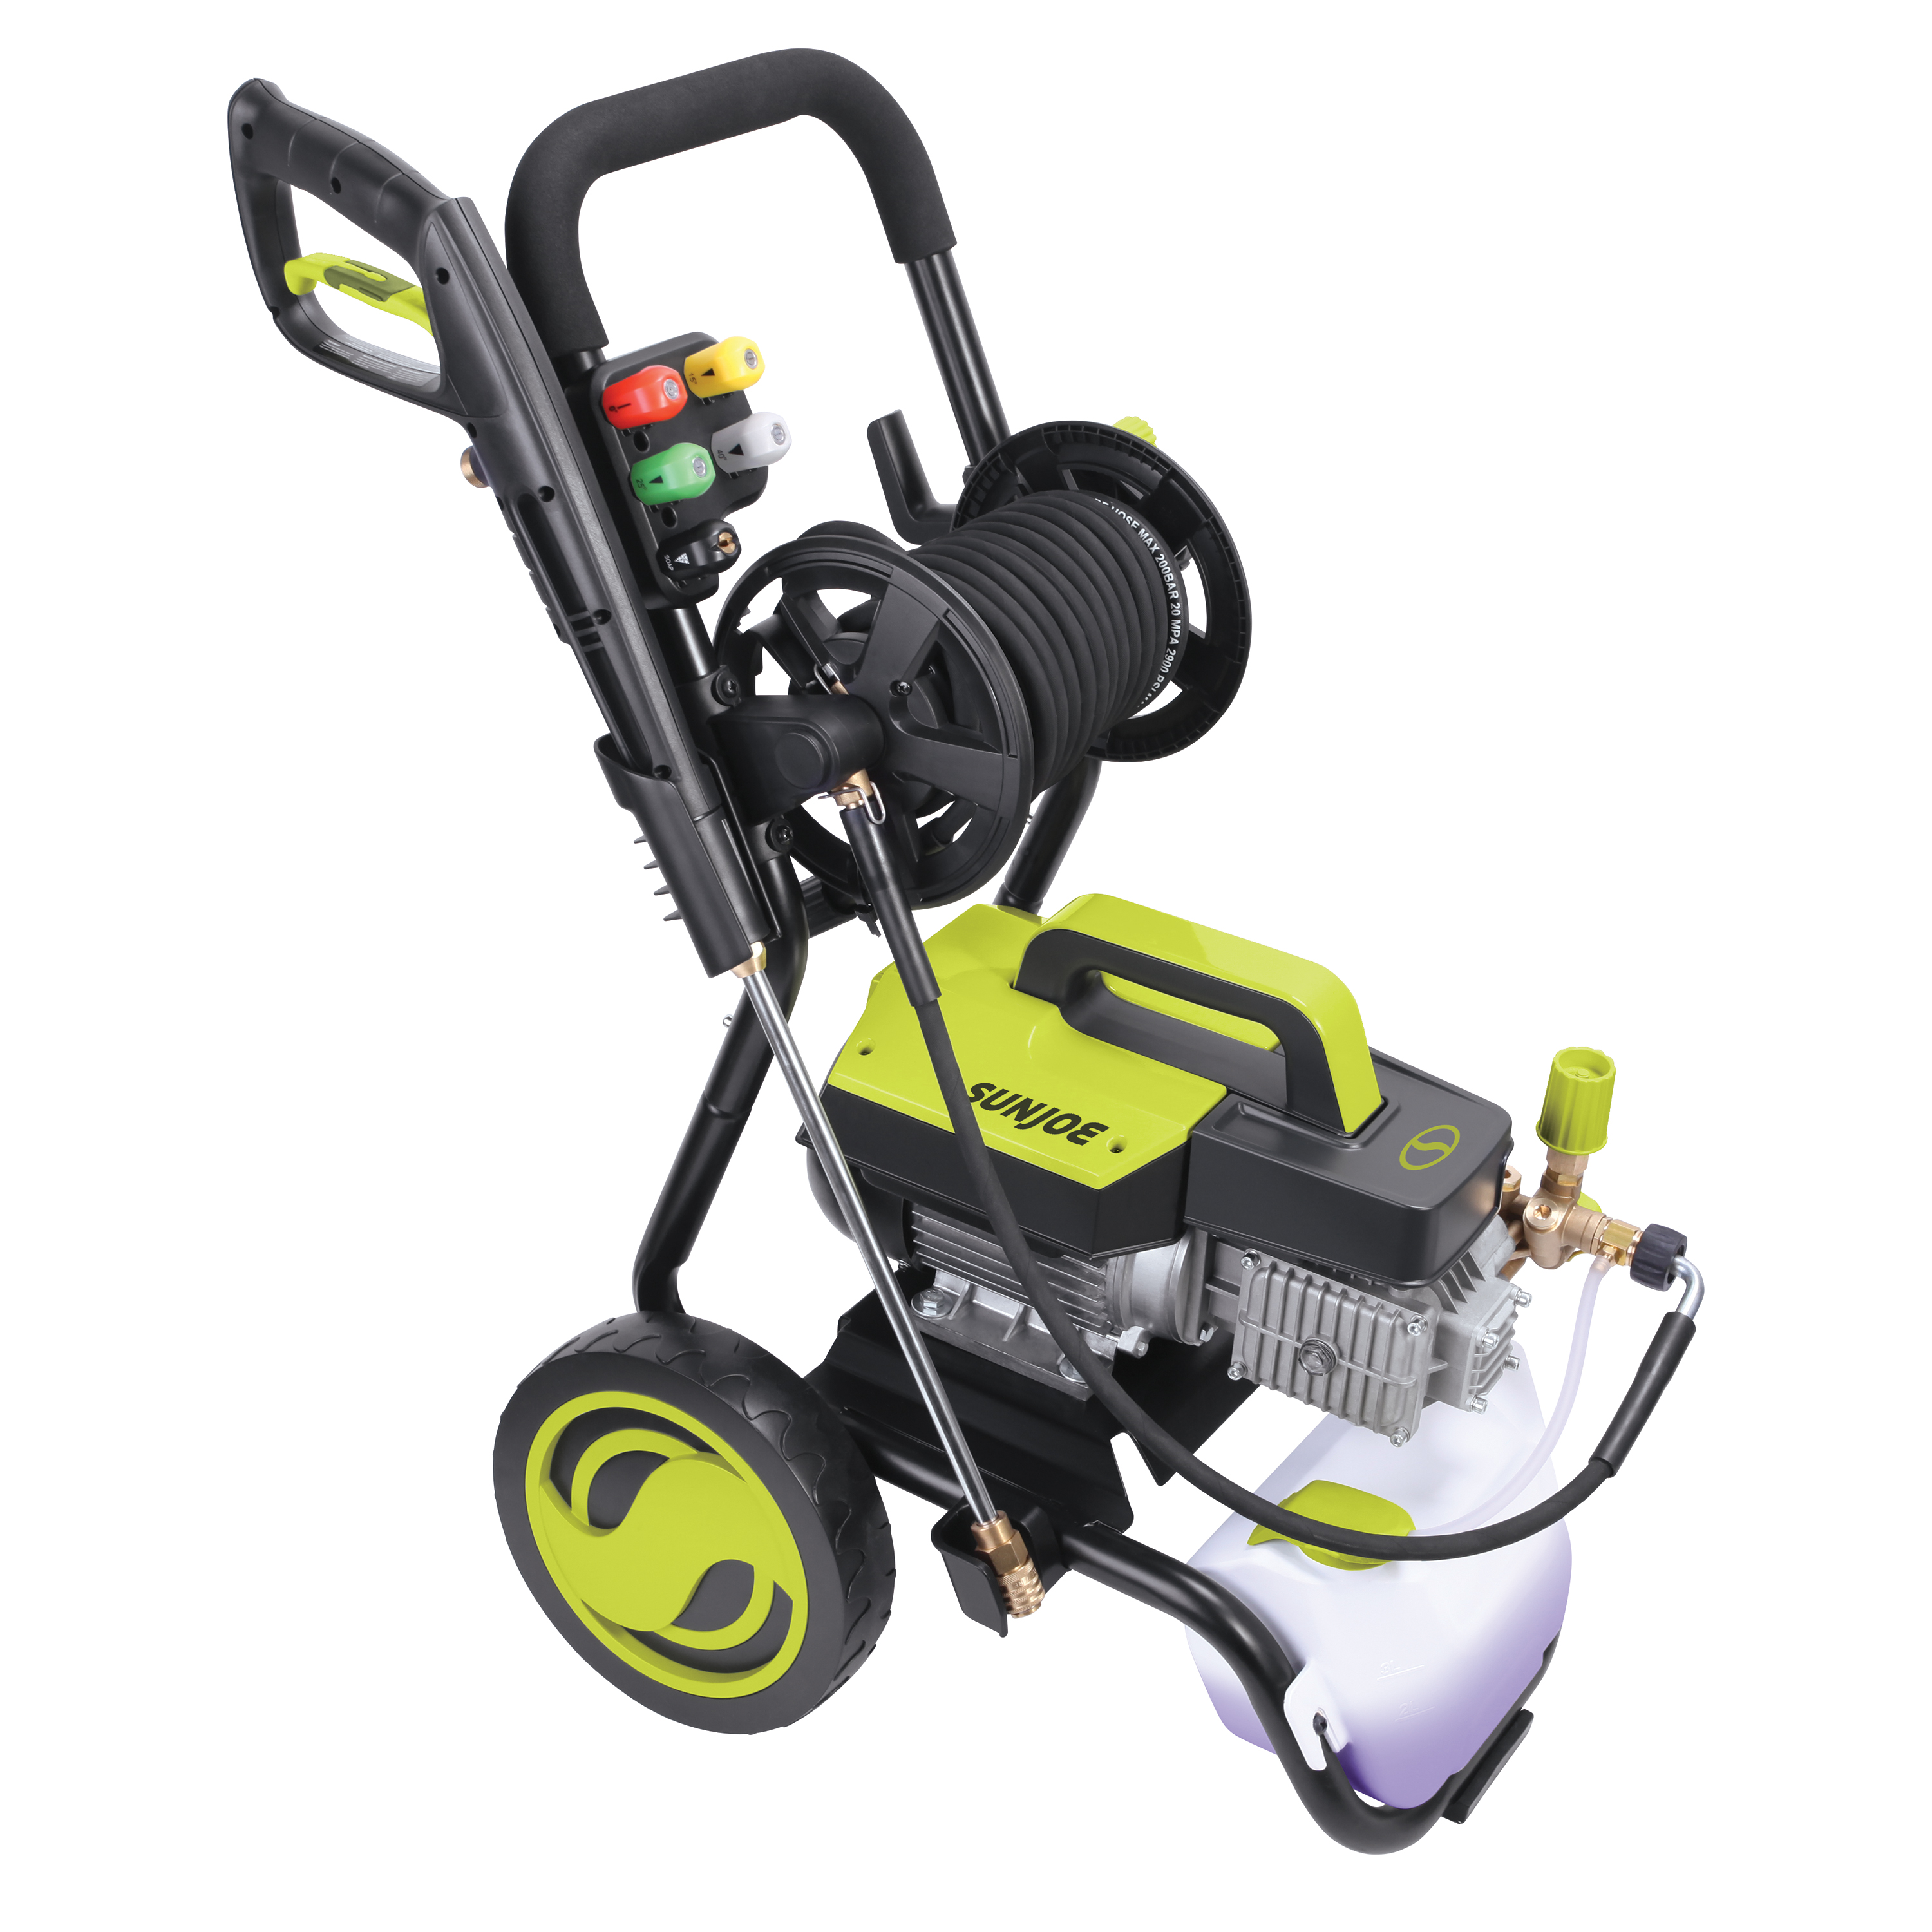 Sun Joe SPX9006-PRO Commercial Series Cold Water Electric Direct Drive Crank Shaft Pressure Washer | 1300 PSI Max | 2 GPM Max | 2.15 HP Motor | 120 Volt | Wall Mount | Roll Cage | Hose Reel